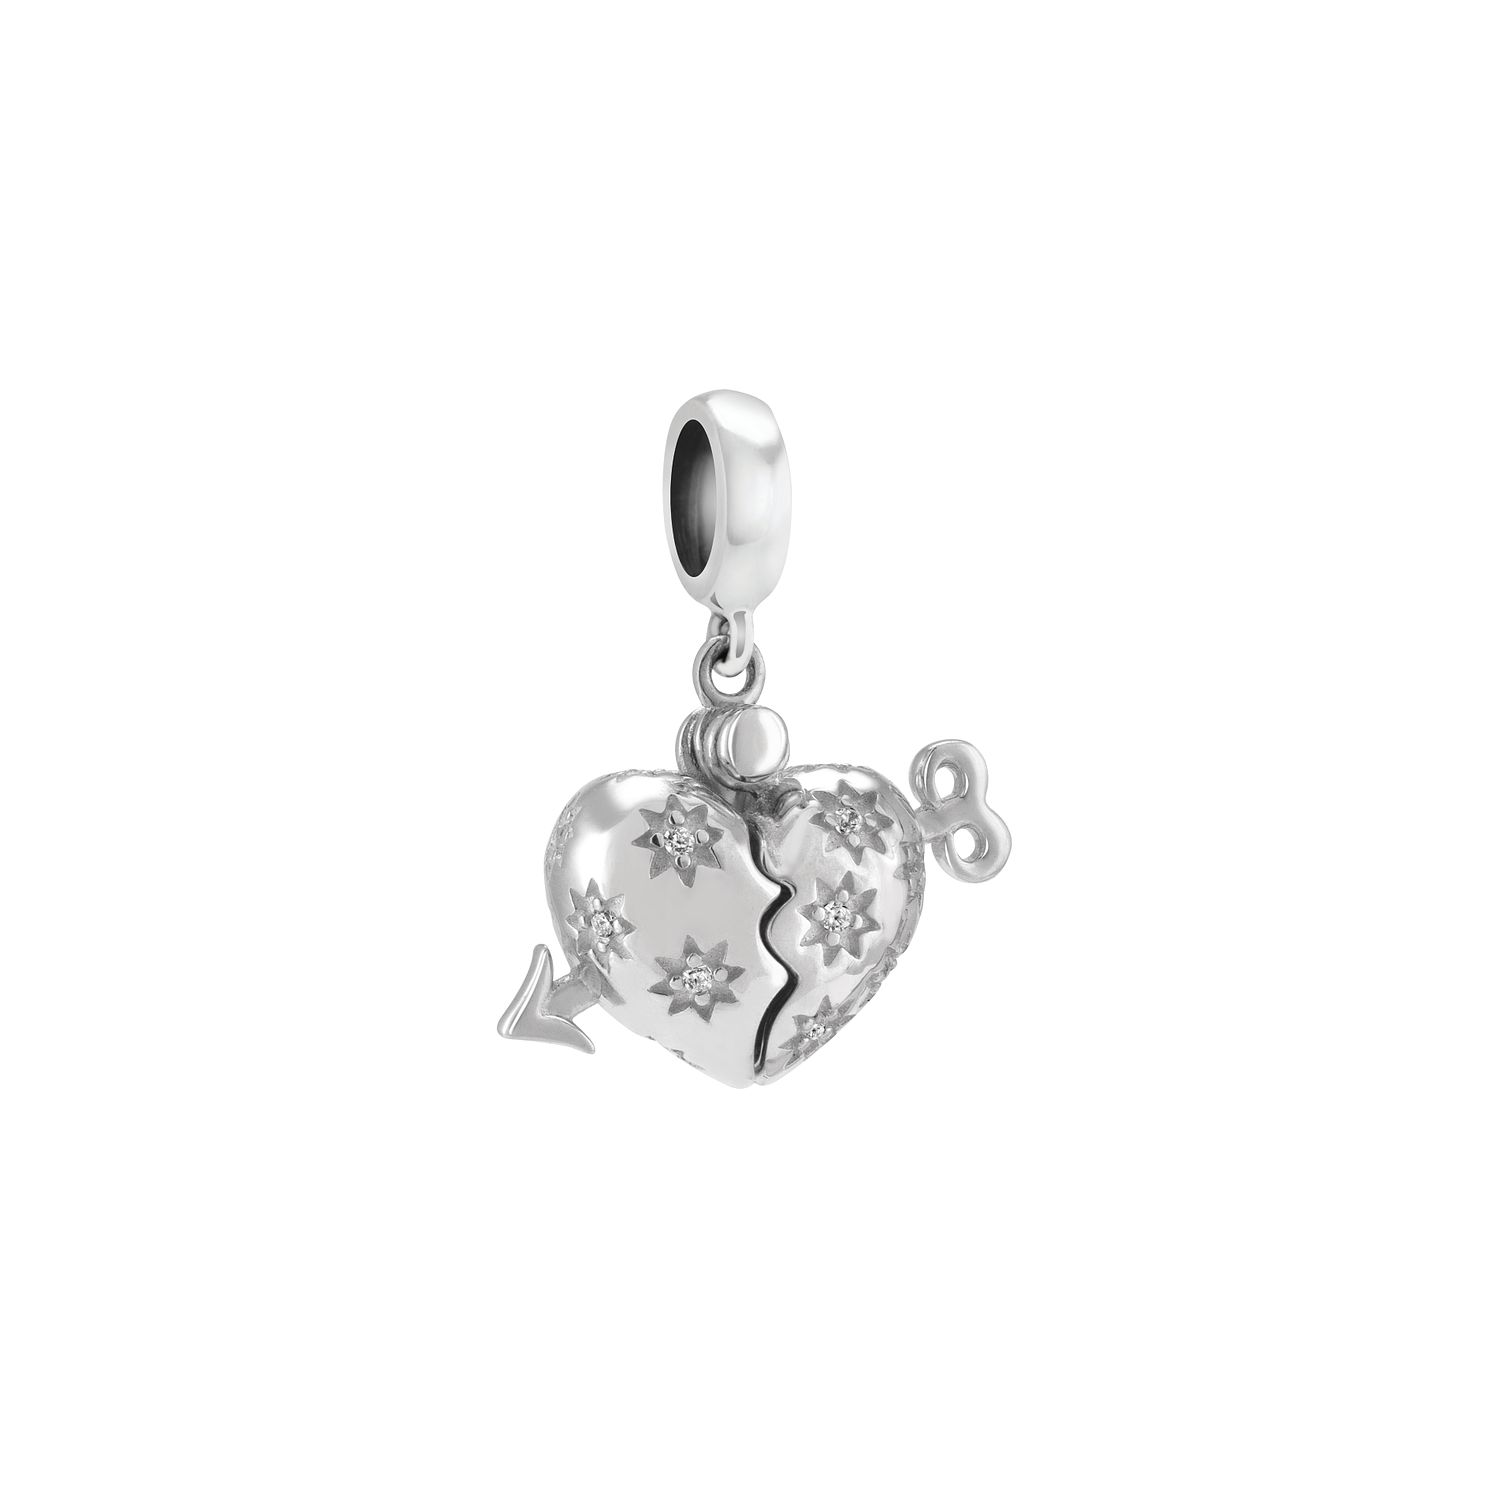 Chamilia Cupid's Arrow Sterling Silver & Swarovski Charm - Product number 3963063